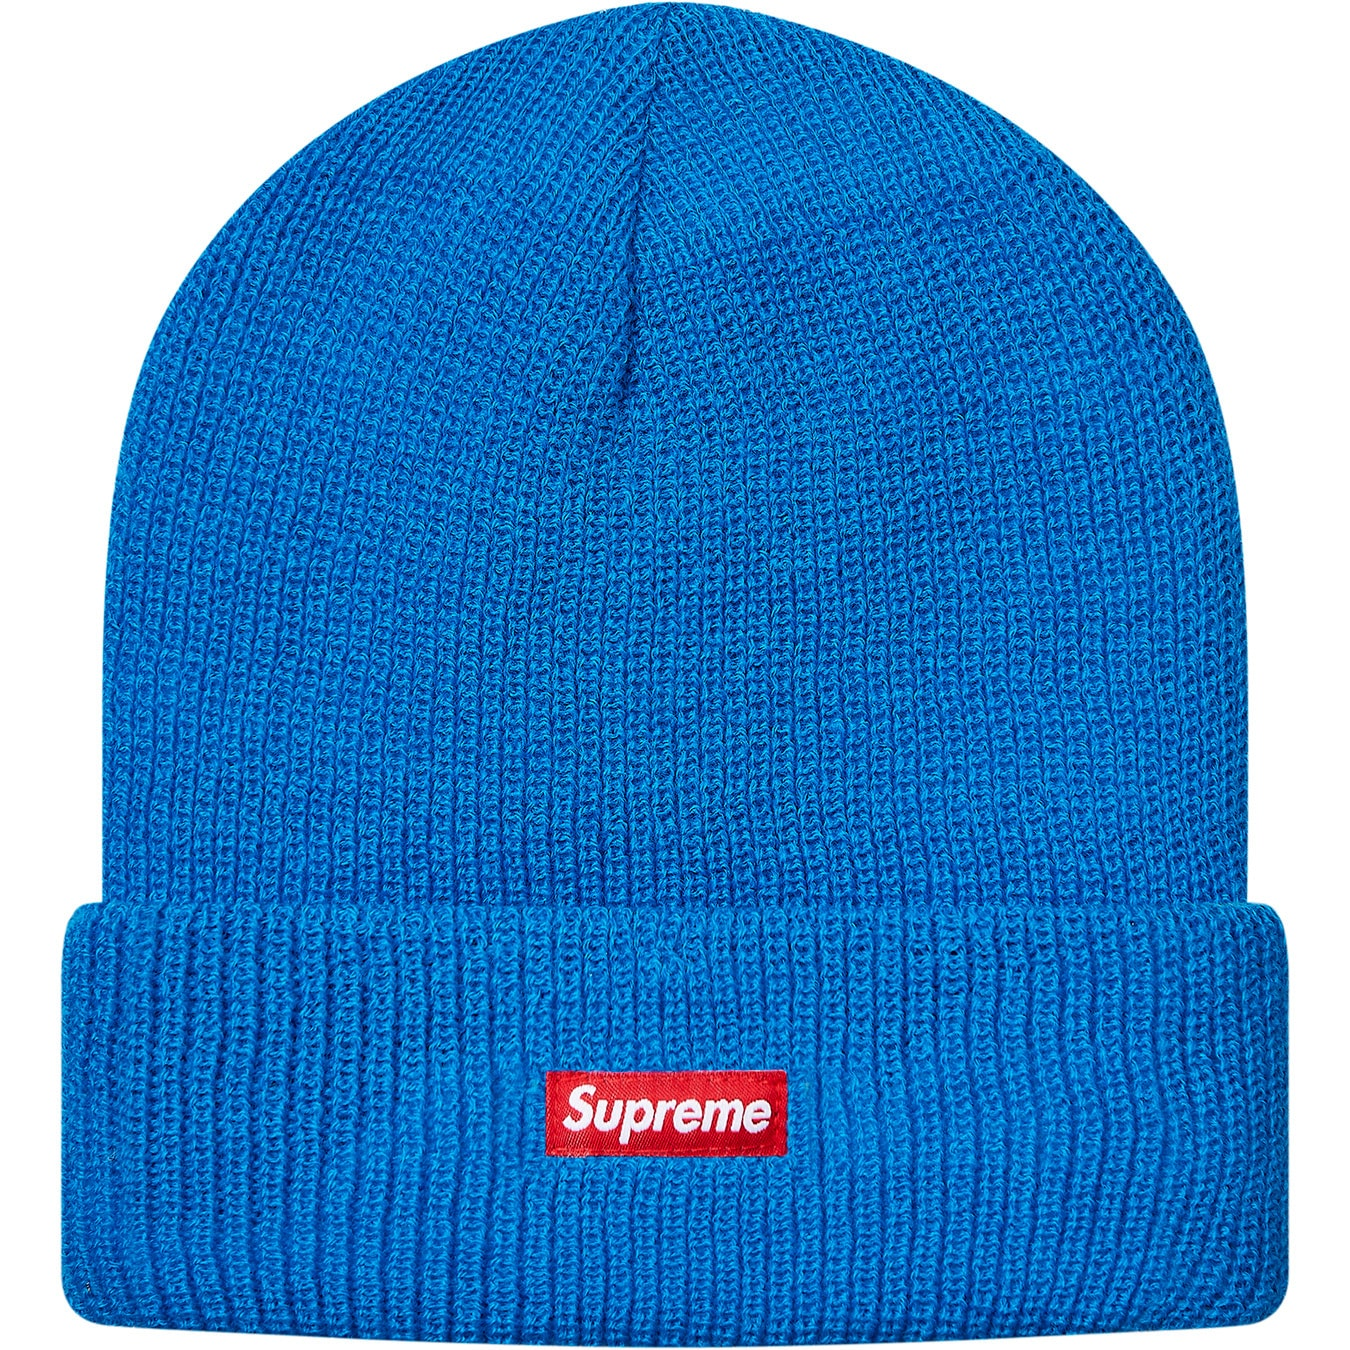 supreme-18aw-fall-winter-gore-tex-beanie